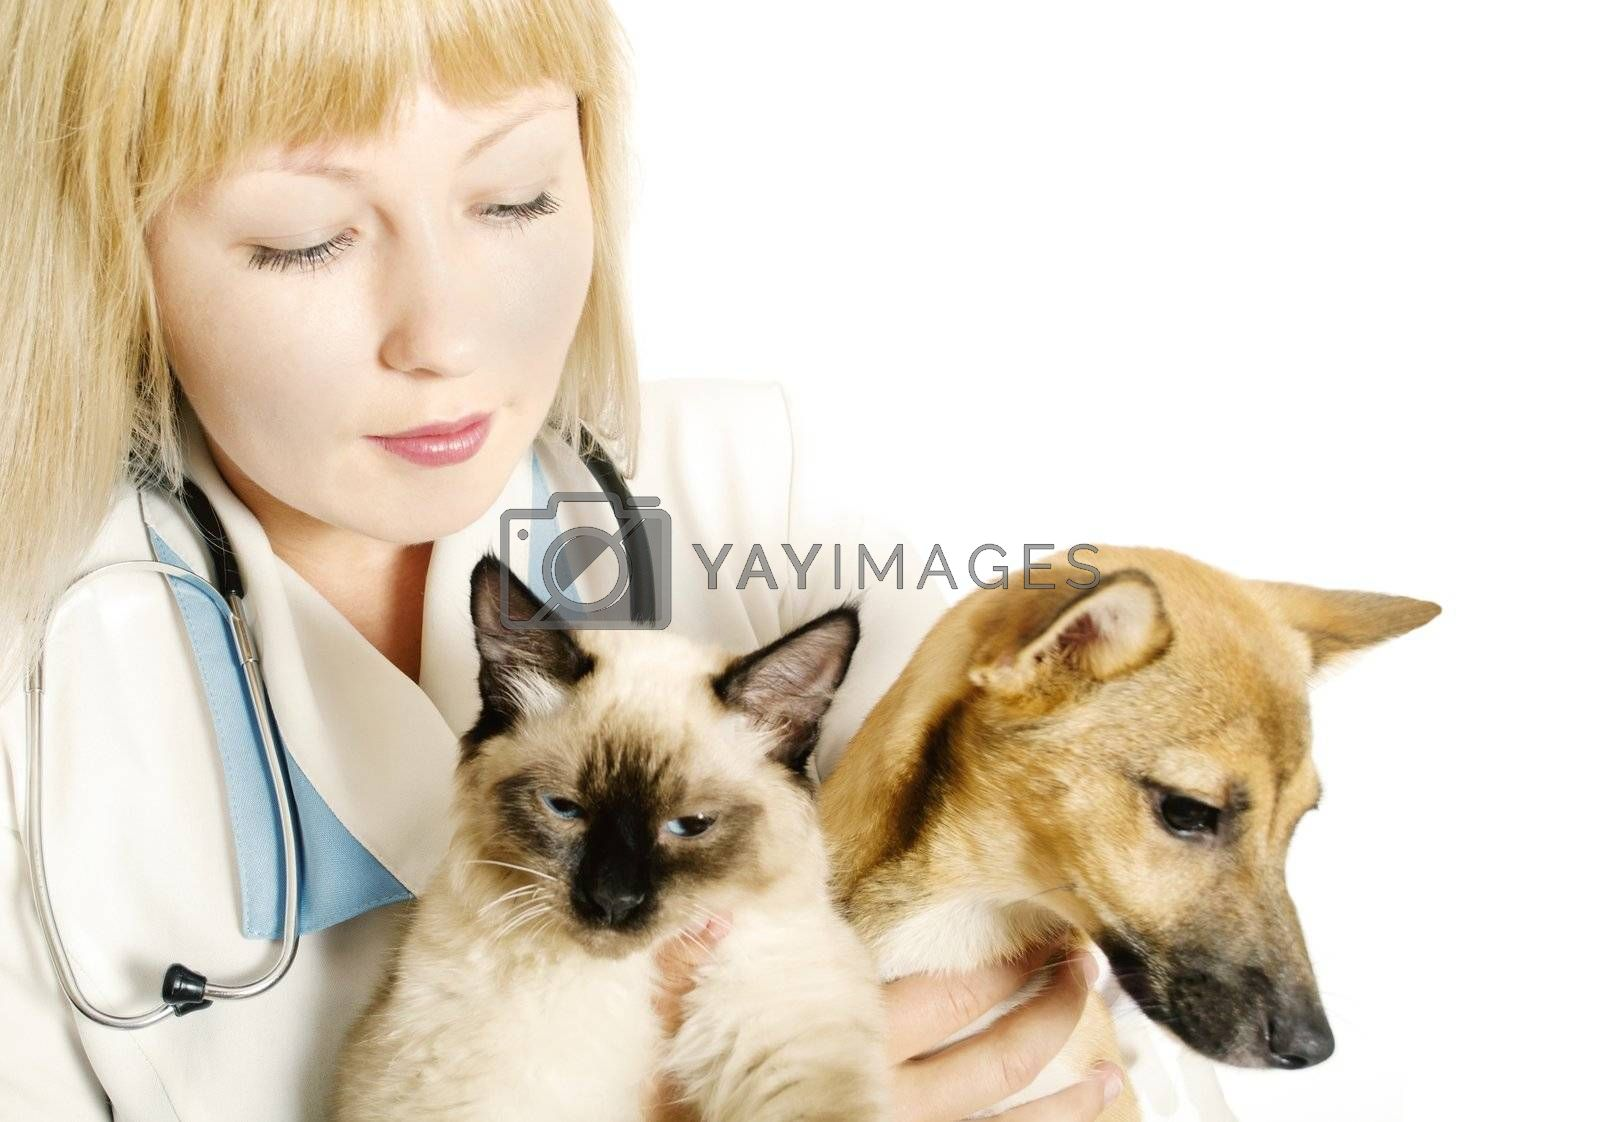 Woman veterinarian with two animals, a cat and a dog